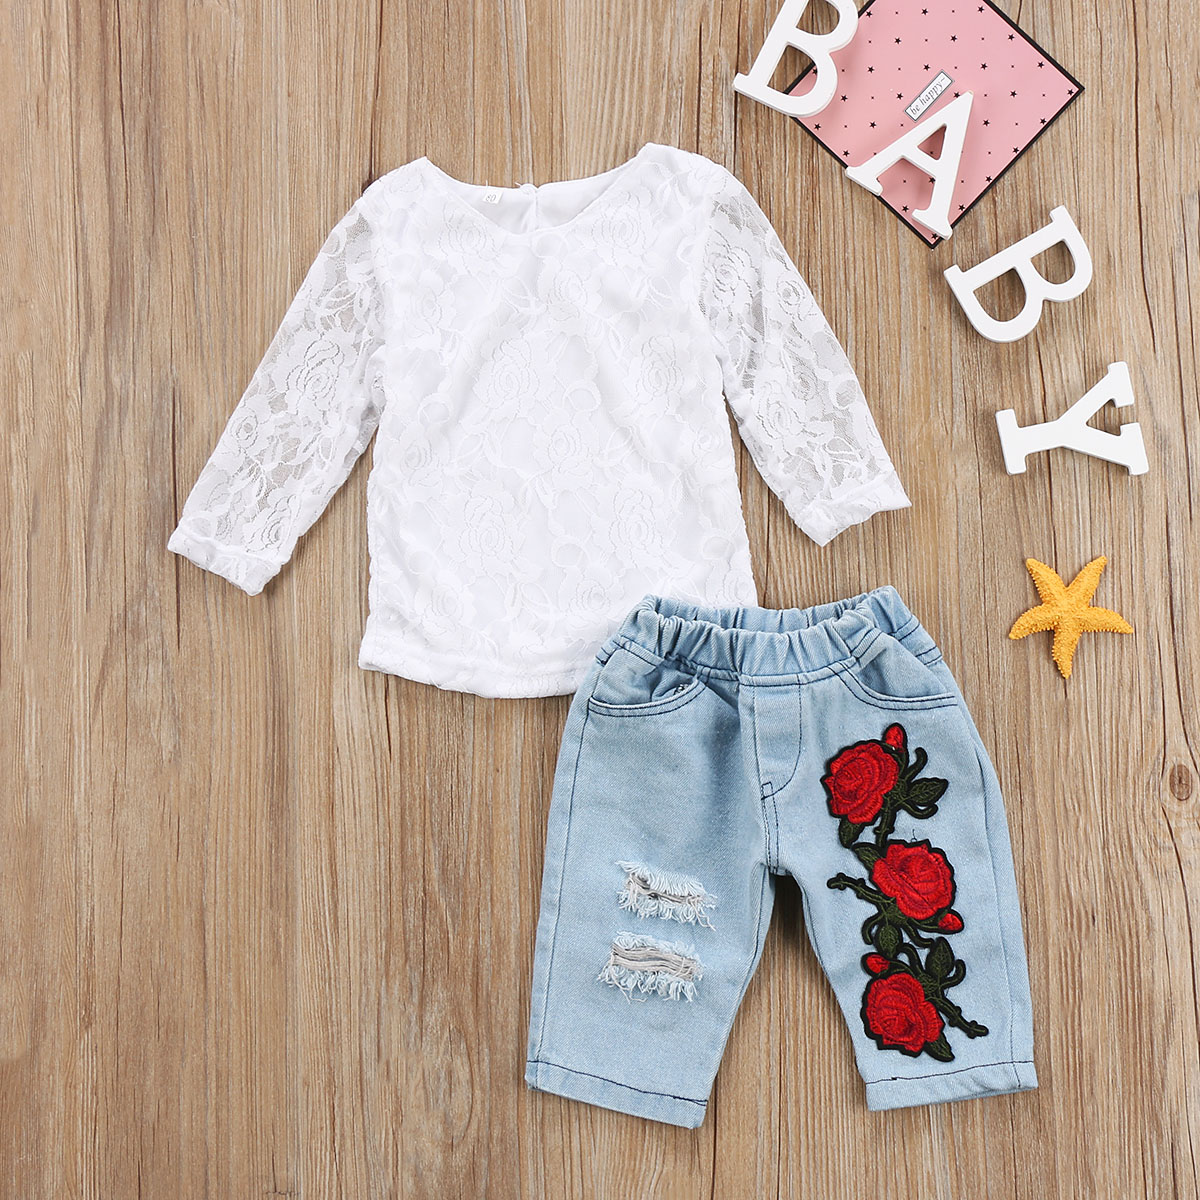 Kids Baby Girls Lace net Long Sleeve Clothes T-shirt Tops 3D Flower Denim Hot Pants Outfits Set Clothes